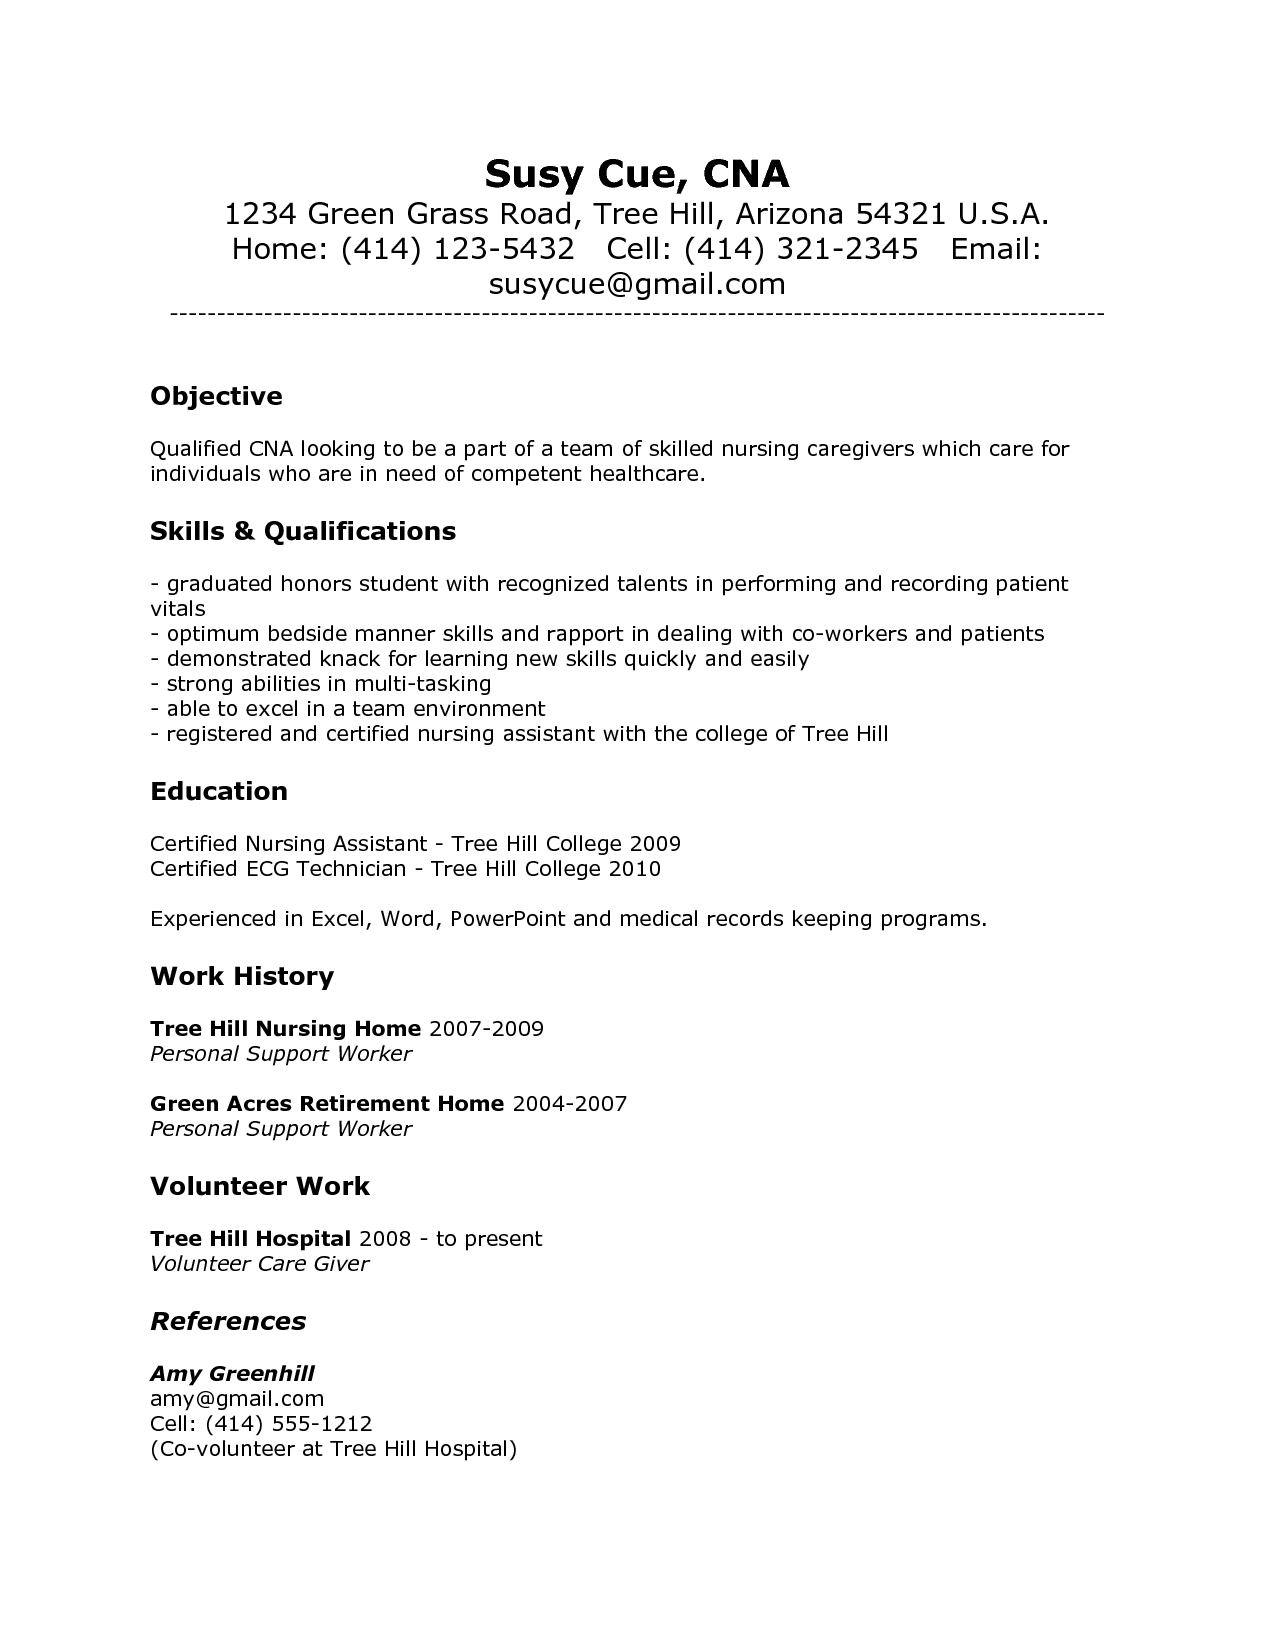 Cna Resume Samples Resume Sample Cna Job Duties Resume Resume Sample